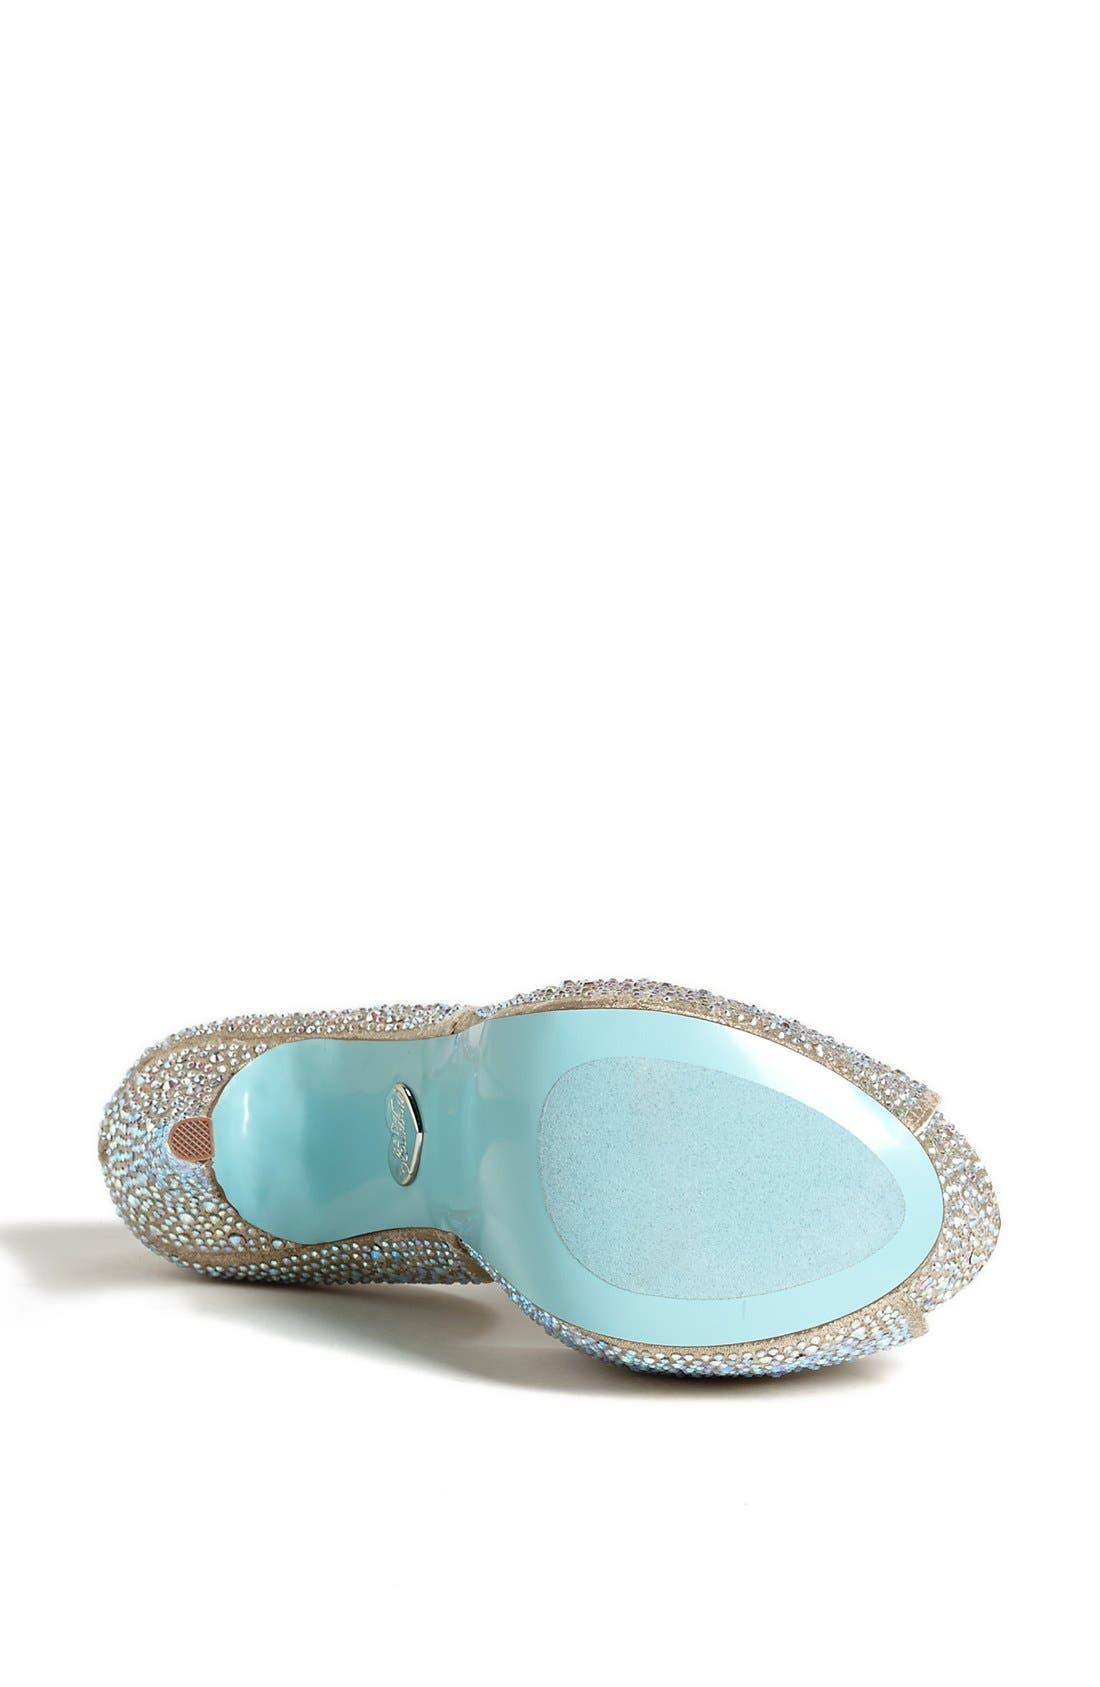 BETSEY JOHNSON,                             Blue by Betsey Johnson 'SB-Kiss' Sandal,                             Alternate thumbnail 3, color,                             710